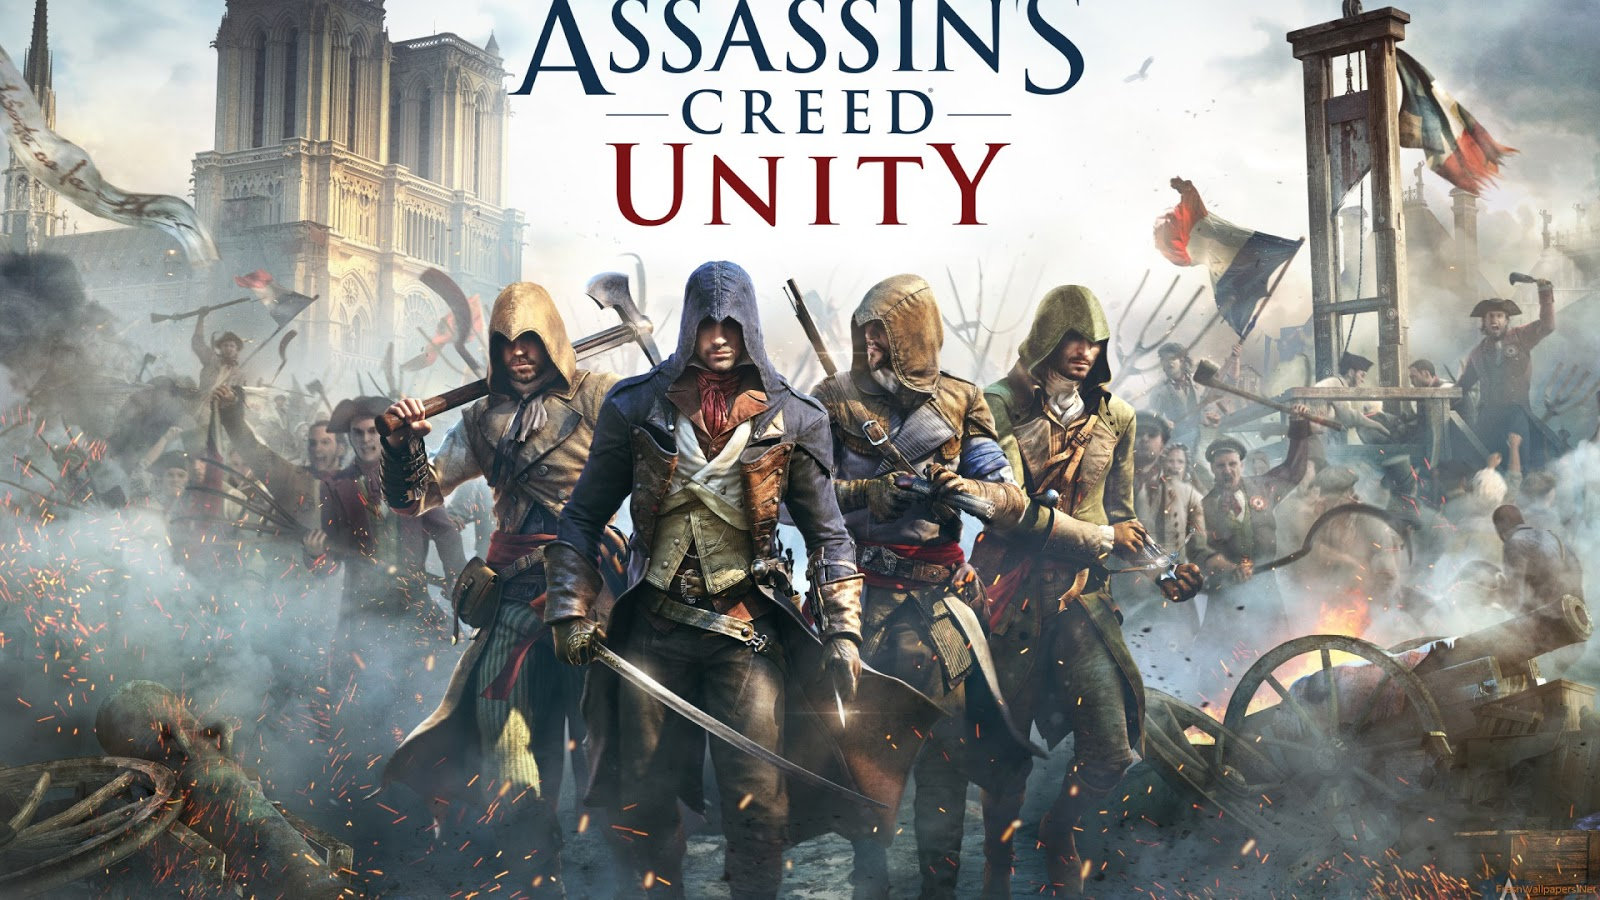 Download Assassin's Creed Unity 100% Save Game ...